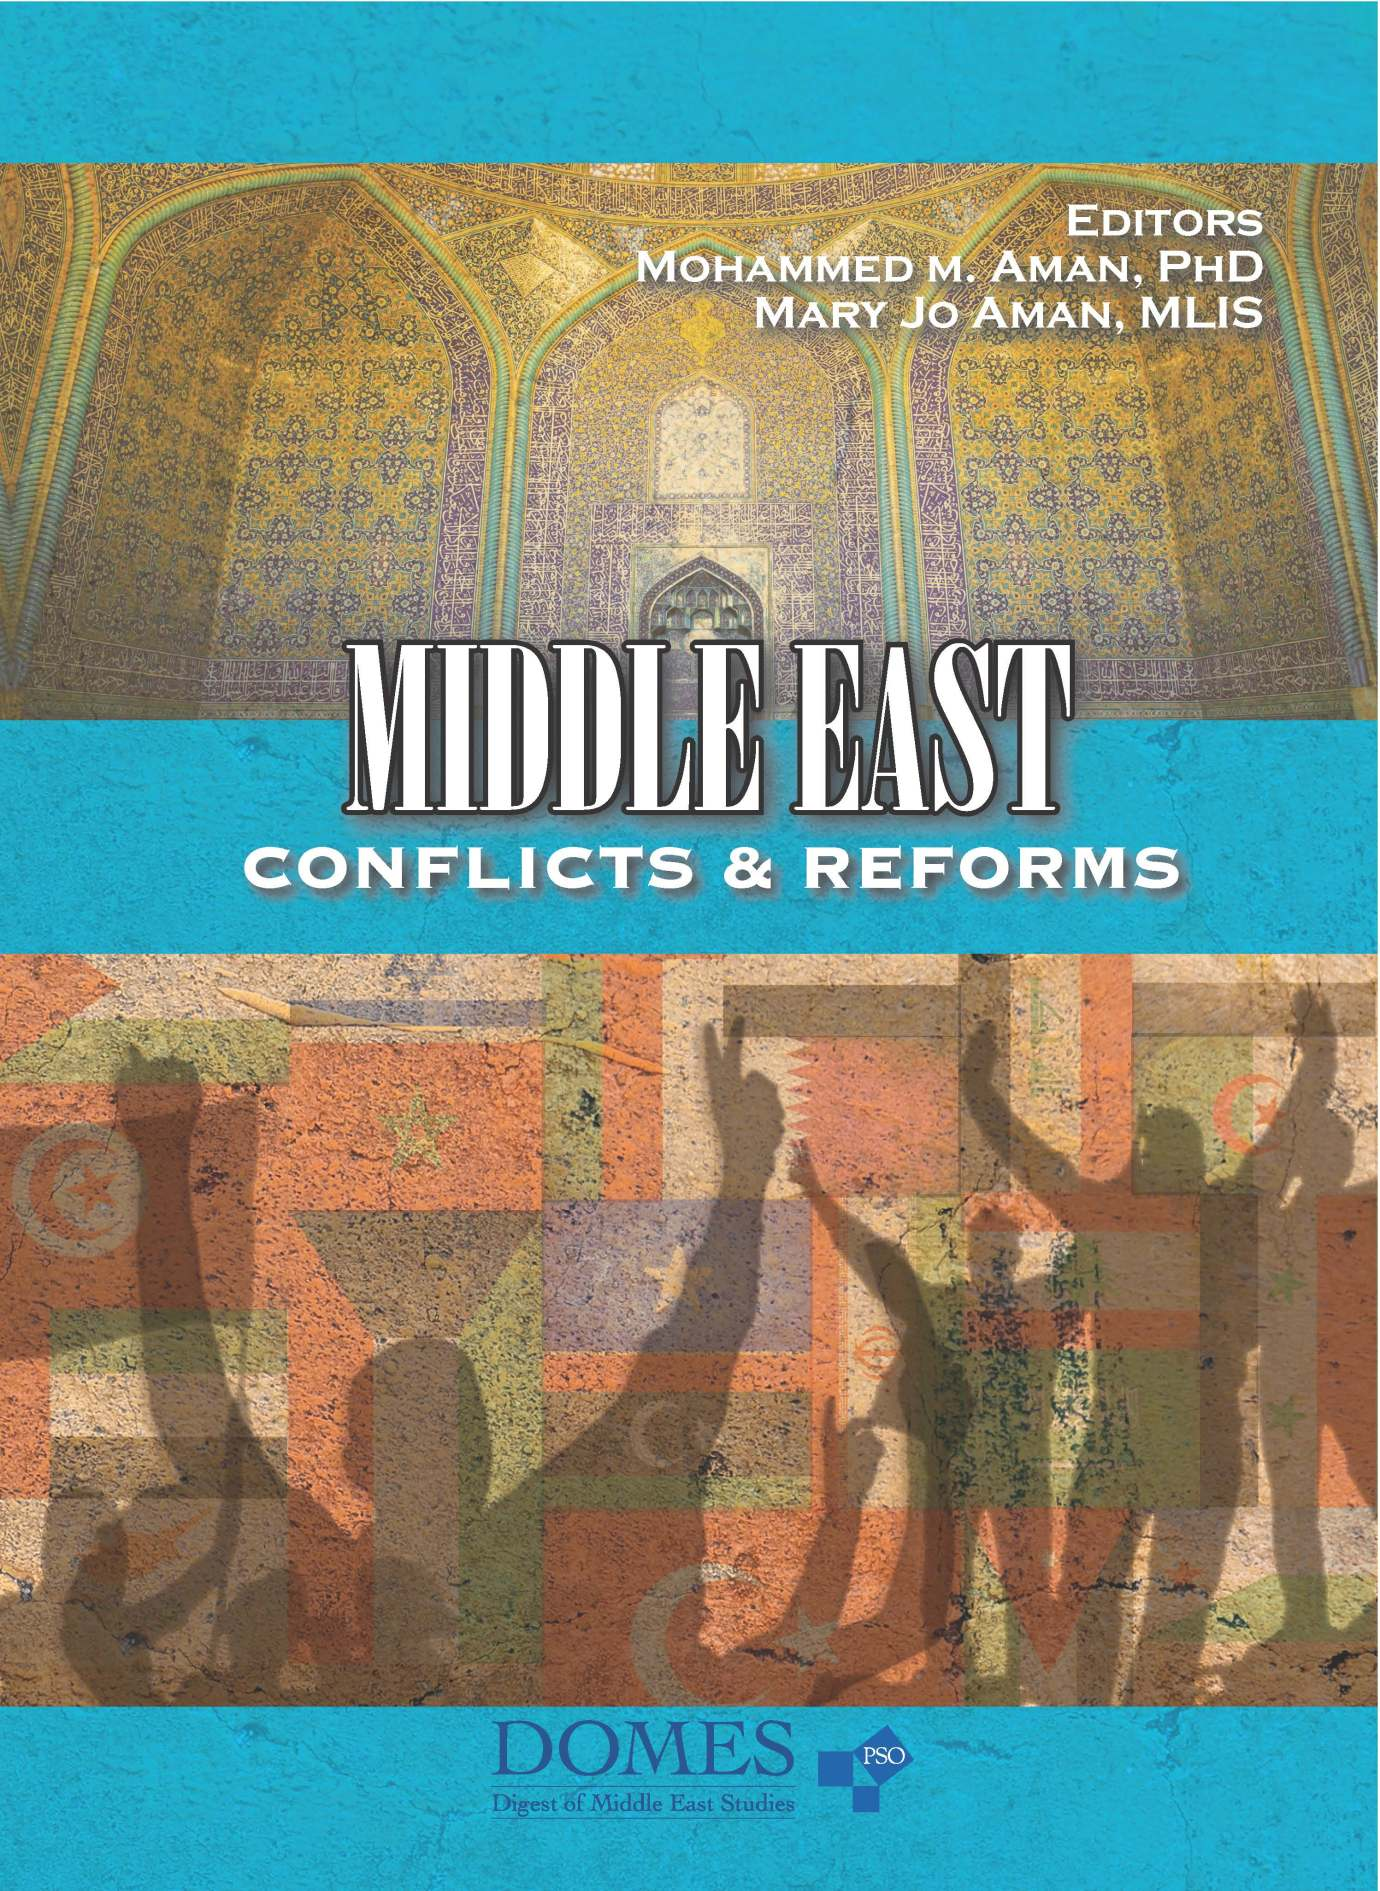 Middle East Conflicts & Reforms